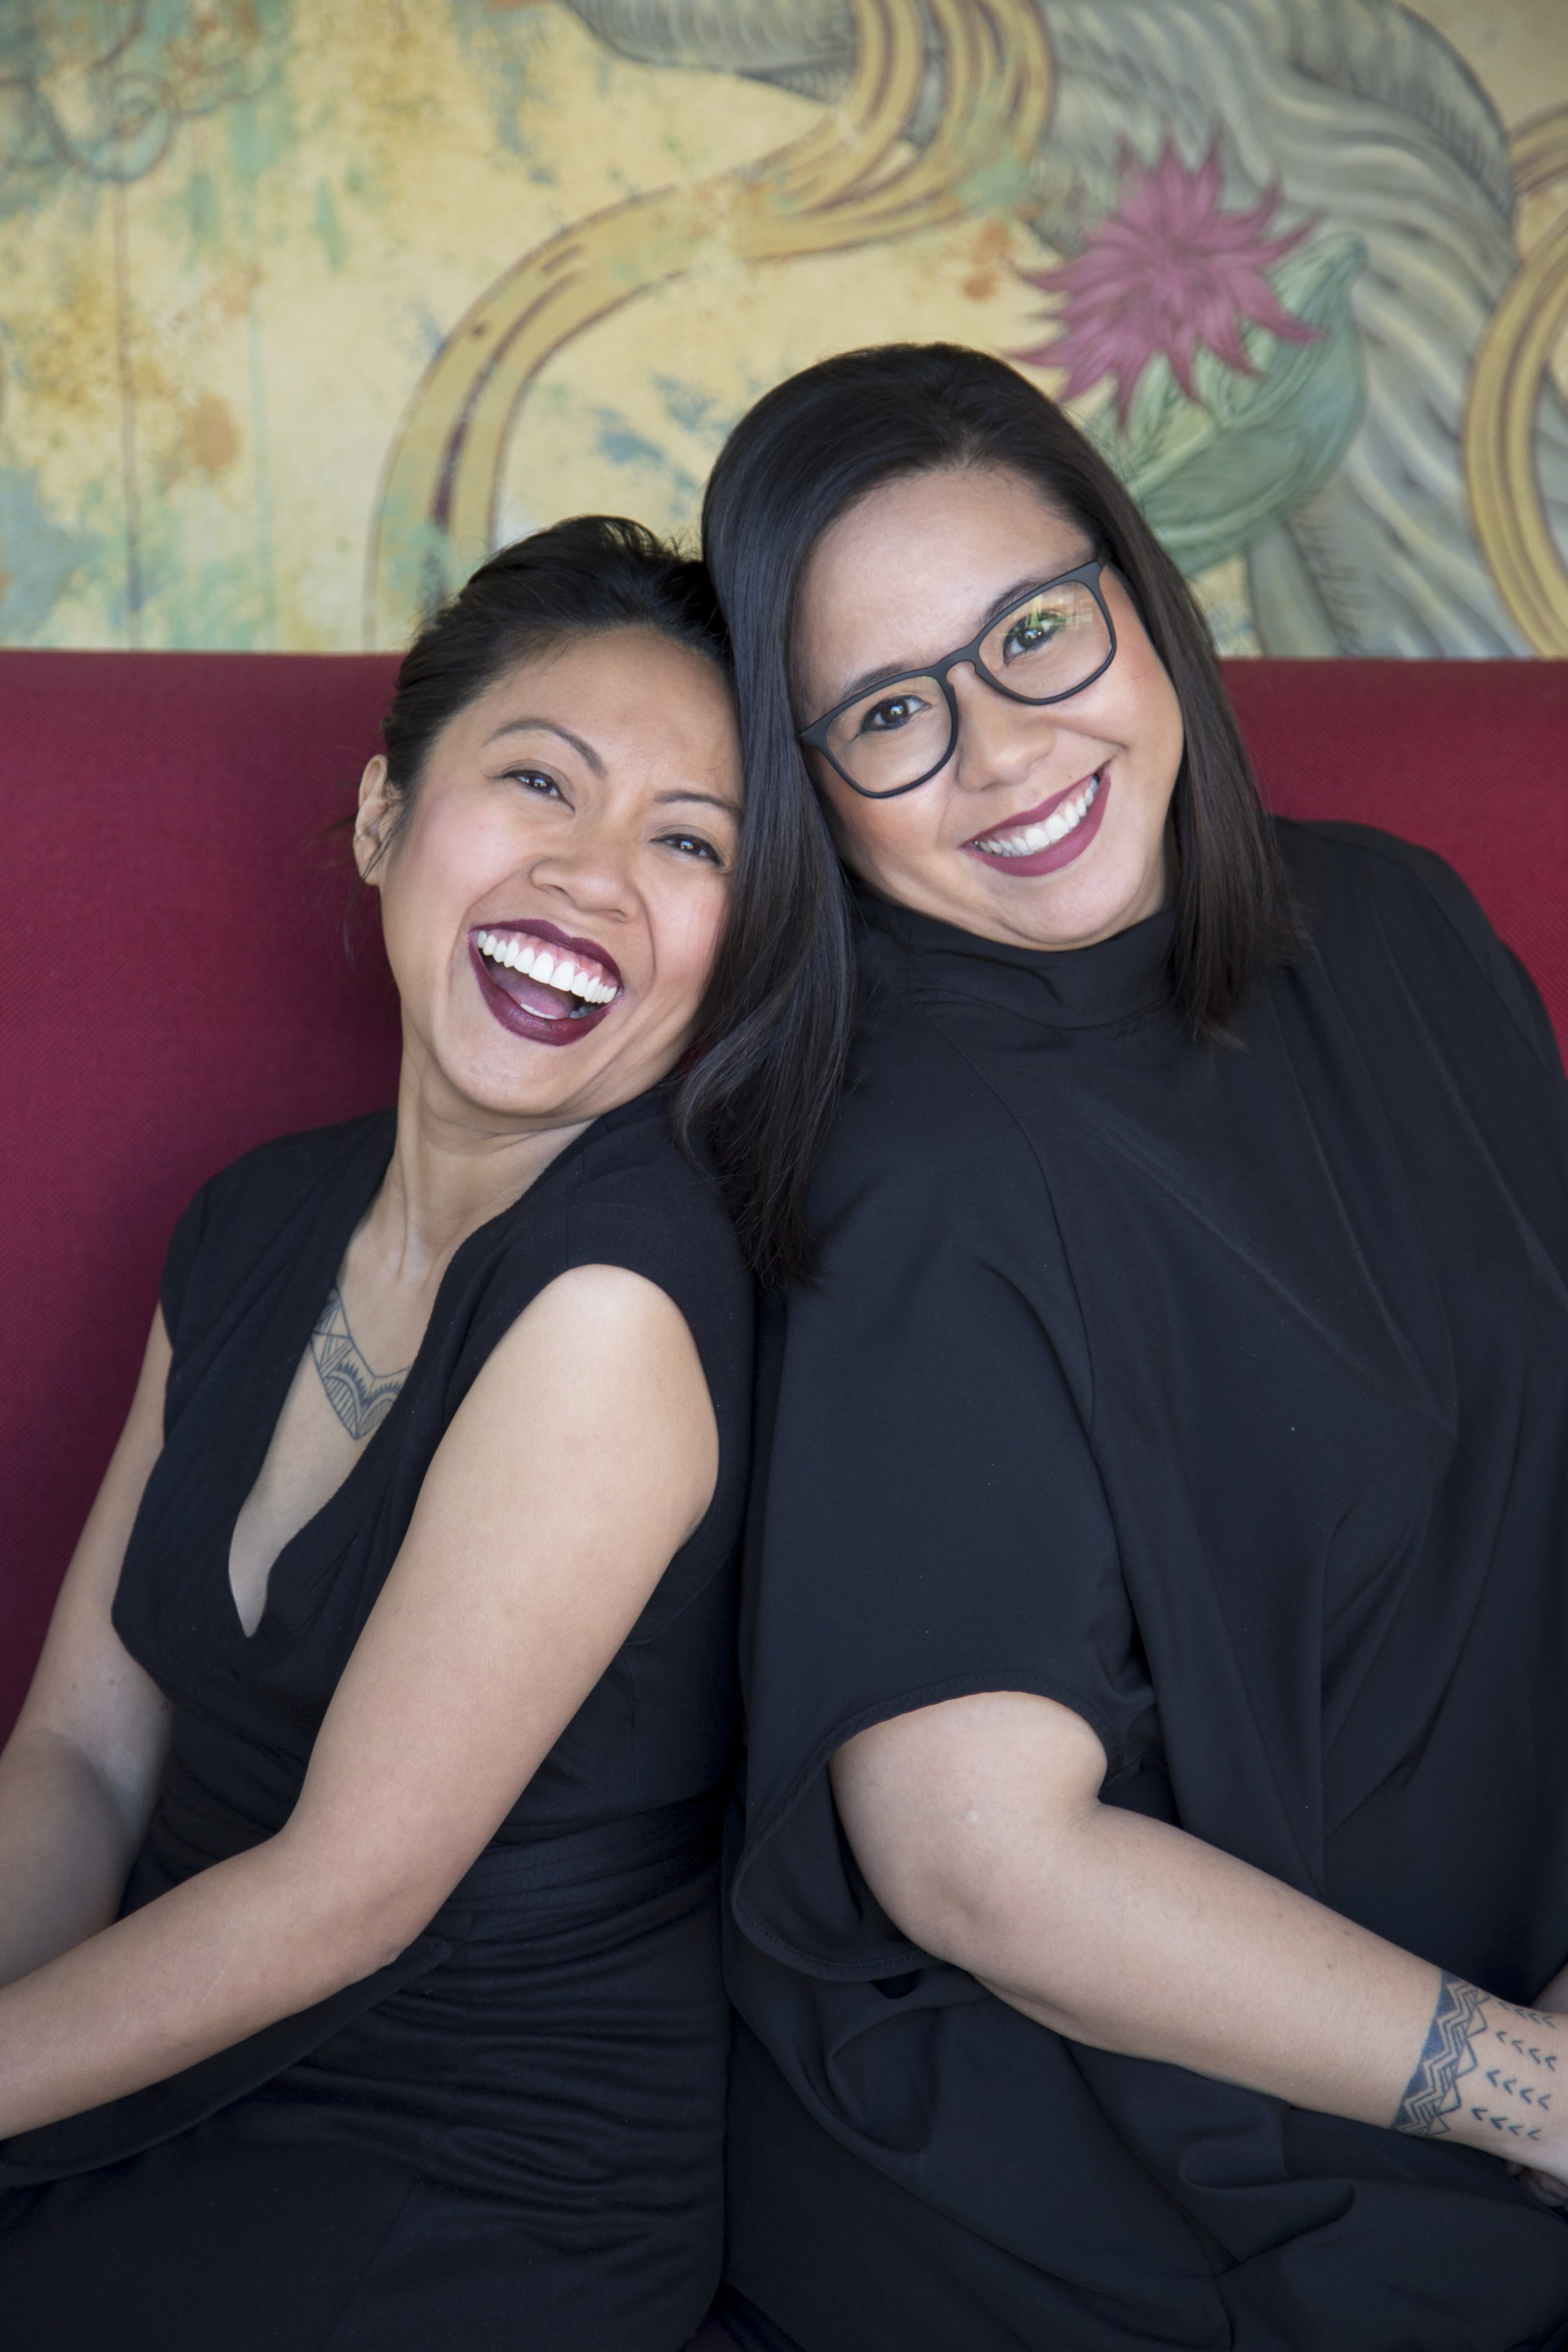 """Two years in a row! Thanks to NewCity for naming Filipino Kitchen to their annual Big Heat: Chicago's Food and Drink Fifty List again!   Photo: Monica Kass Rogers  41 Sarahlynn Pablo and Natalia Roxas Chefs Filipino Kitchen is a joint effort of Sarahlynn Pablo, a writer, and Natalia Roxas, a photographer, both of whom put time into the kitchen to bring the food of the Philippines to Chicago. Chicagoans are just beginning to understand Filipino food, and that understanding is challenging because, as Pablo explains, """"our cuisine evolves as we evolve and continue to cook our foods. Our challenge as keepers of this tradition is to be inclusive while not alienating others within and outside of our communities."""" As part of their mission, Pablo and Roxas bring Filipino food to the people through events like February's Usapang Pagkain, which Pablo says """"is a discussion within the Filipino community about the food that sustains us as individuals and groups. Usapang Pagkain is an intergenerational space that explores ways to focus on how our food can support our communities physically, nutritionally, emotionally, psychically, historically, spiritually and socially.""""  Jared Rouben /Photo: Monica Kass Rogers"""